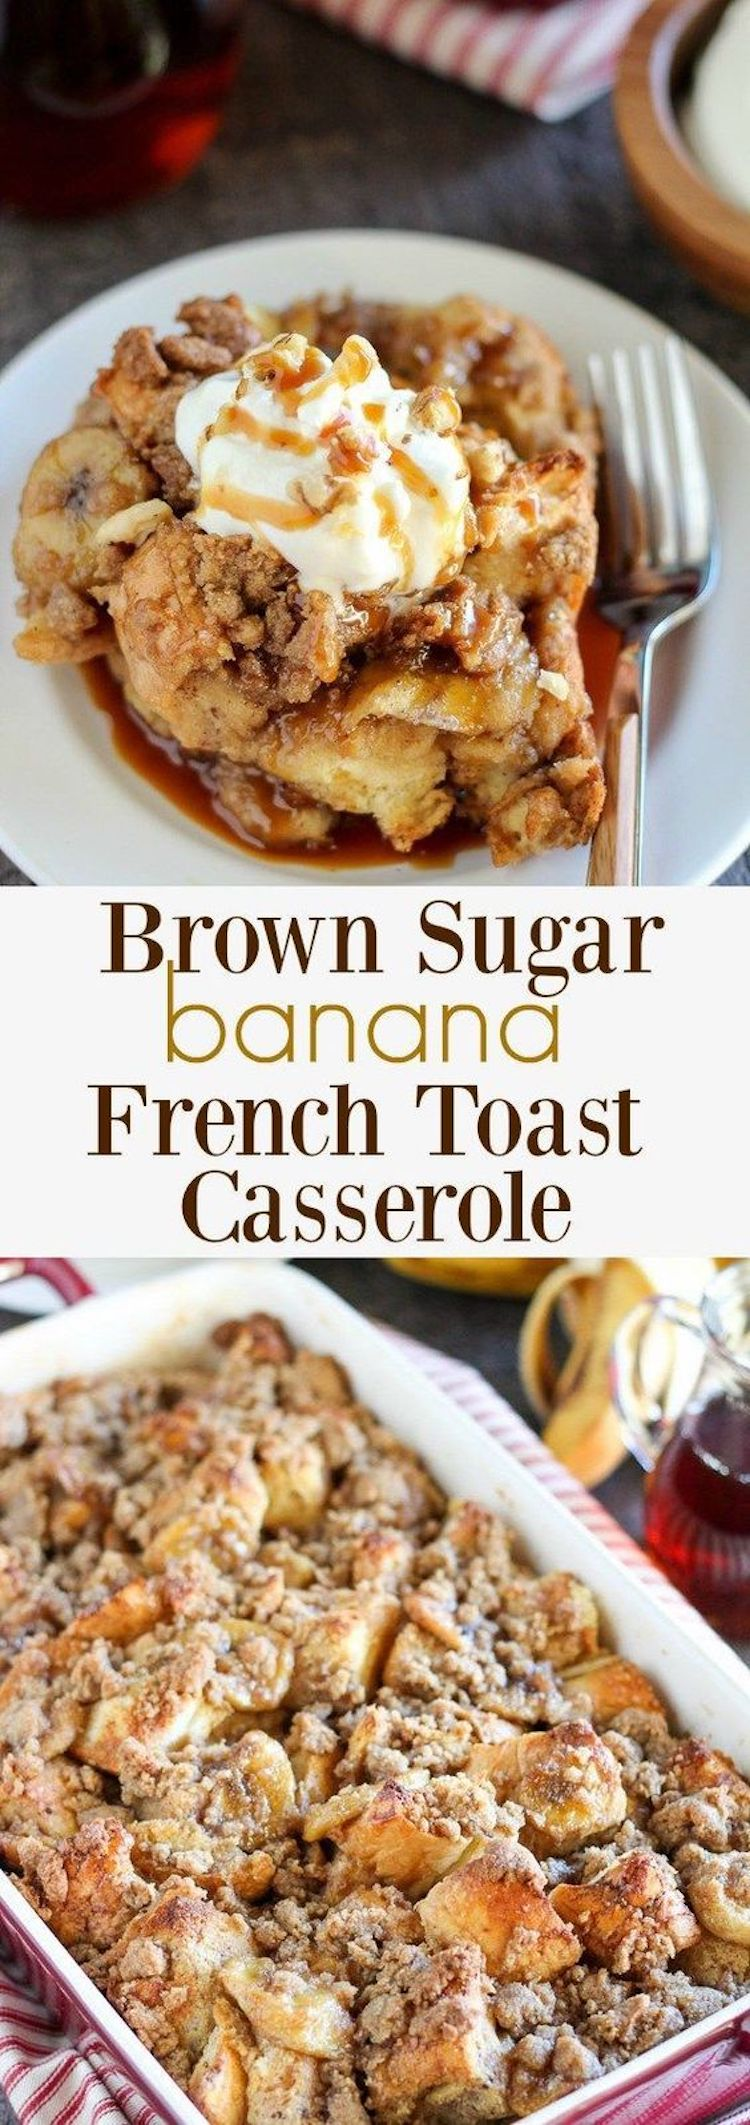 Brown Sugar Banana French Toast Bake Recipe